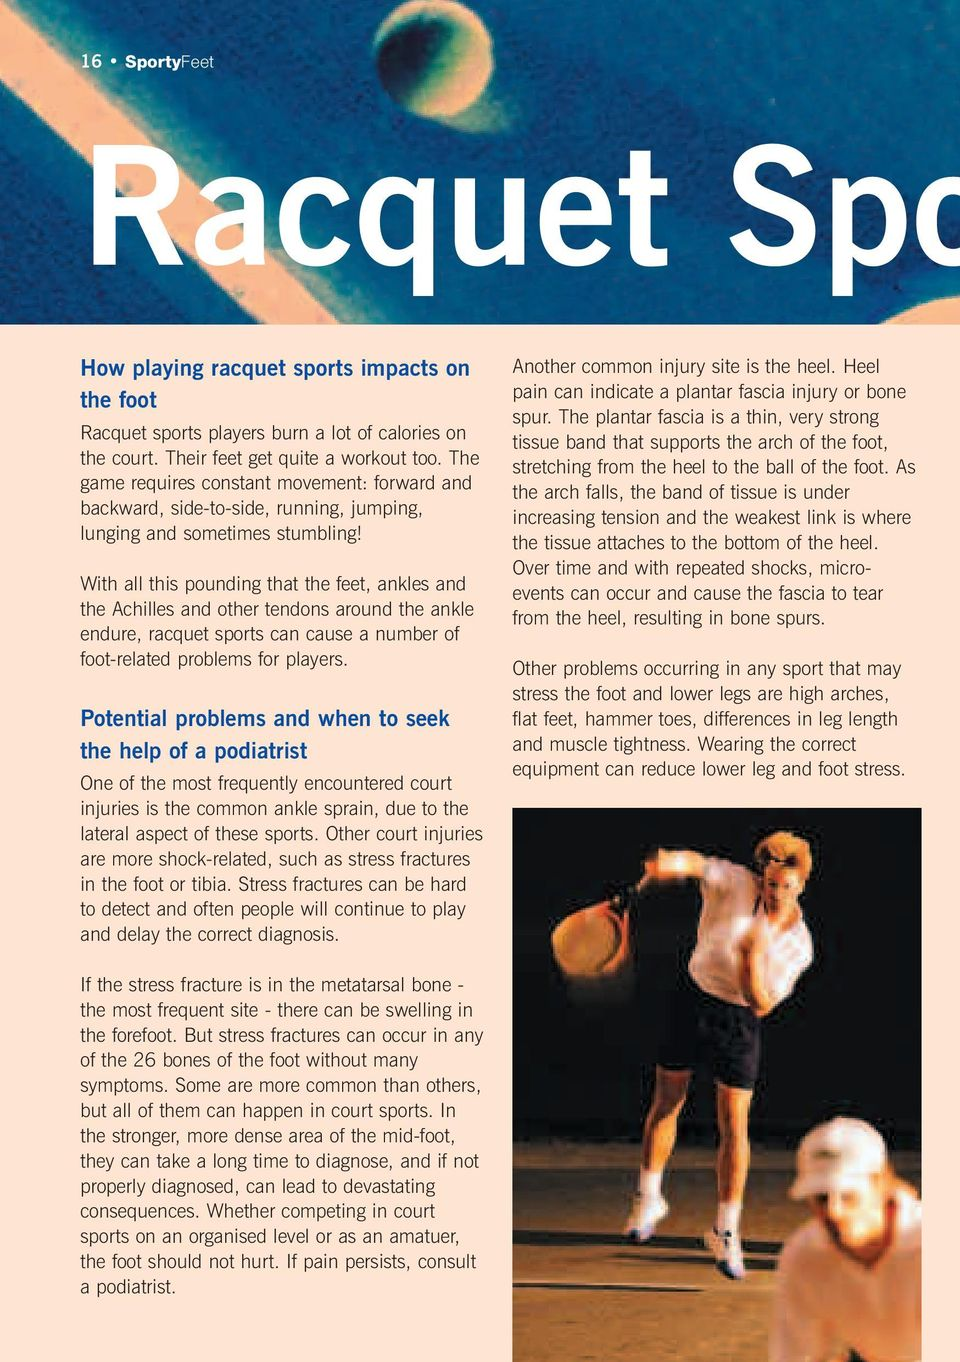 With all this pounding that the feet, ankles and the Achilles and other tendons around the ankle endure, racquet sports can cause a number of foot-related problems for players.